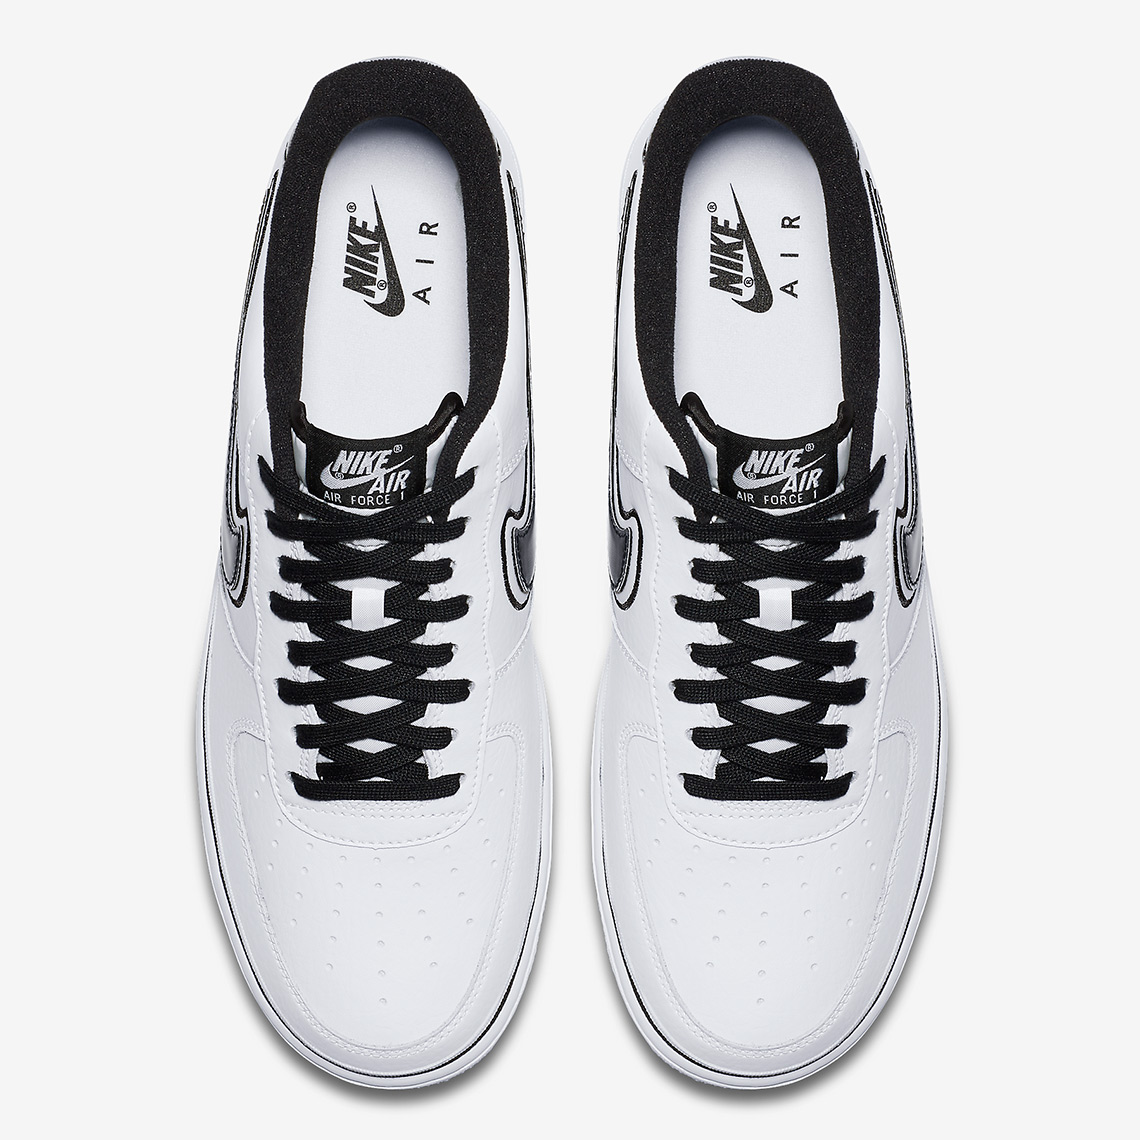 nike air force 1 low AJ7748 100 6 - Nike Air Force 1 Low Spurs AJ7748-100 Release Info